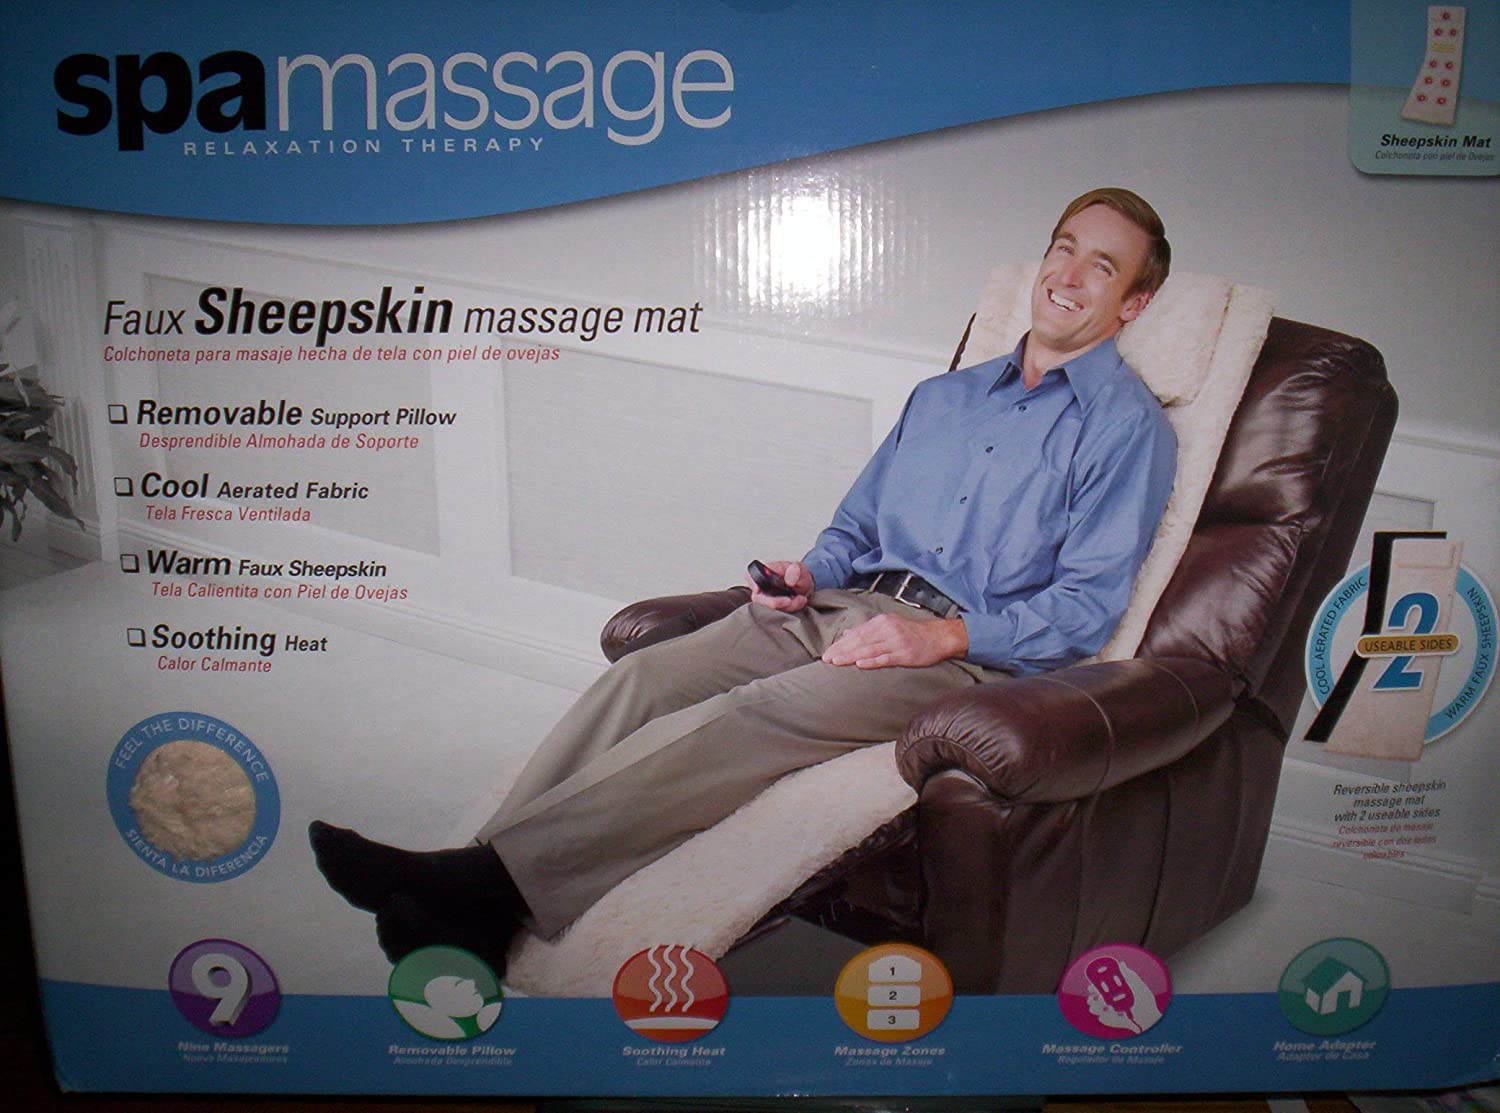 Amazon.com: Spamassage Relaxation Therapy/Sheepskin Massage ...